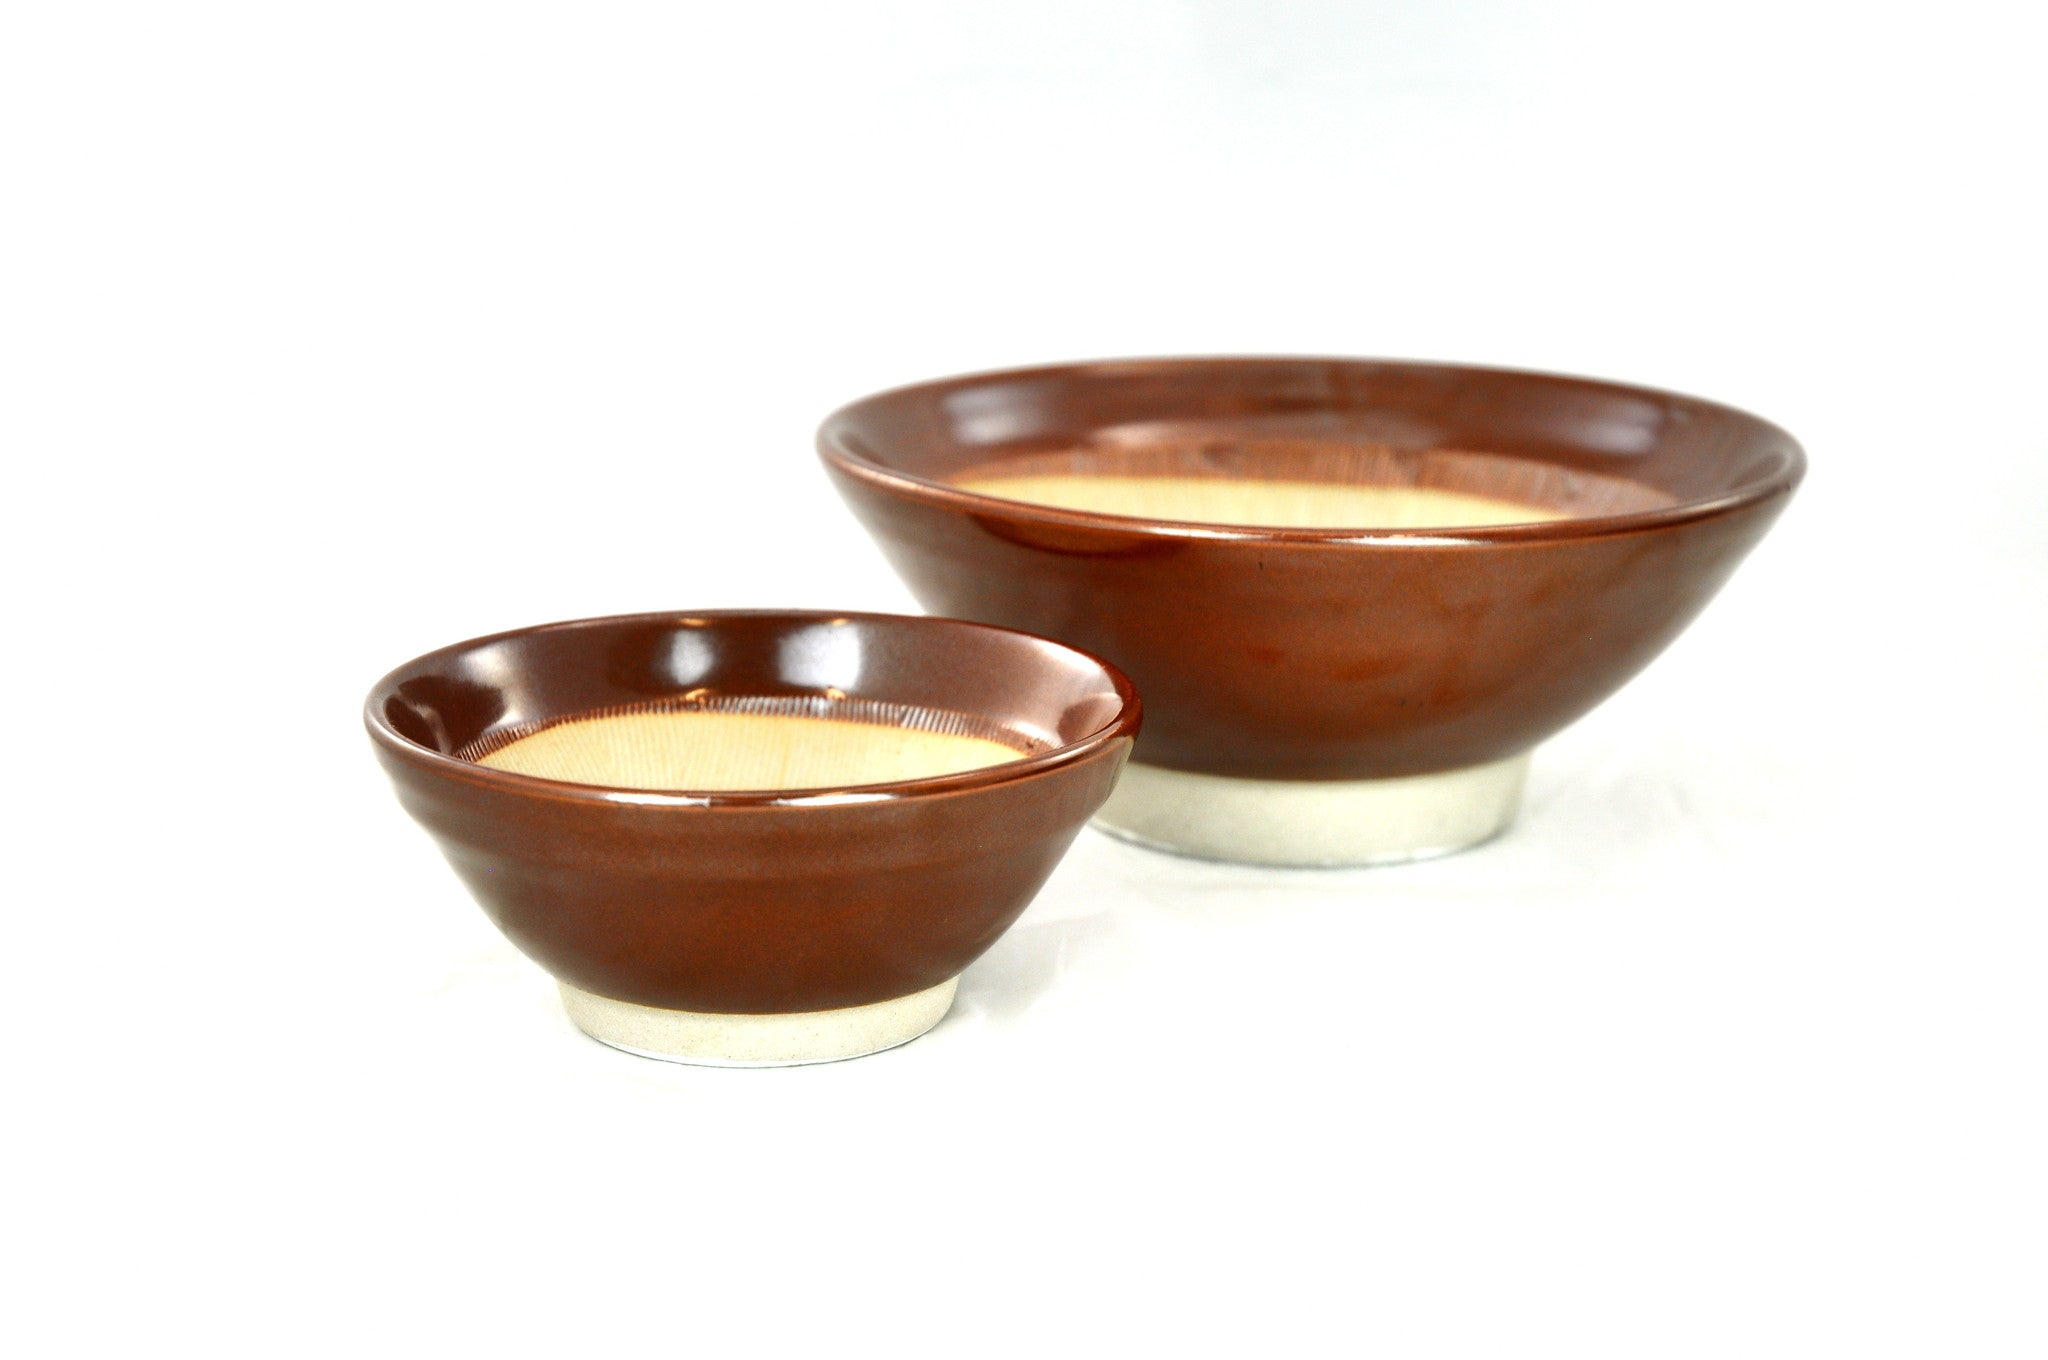 Ceramic Mortar & Wooden Pestle (Suribachi & Surikogi) 수리바치 & 수리코기, Tabletop - eKitchenary